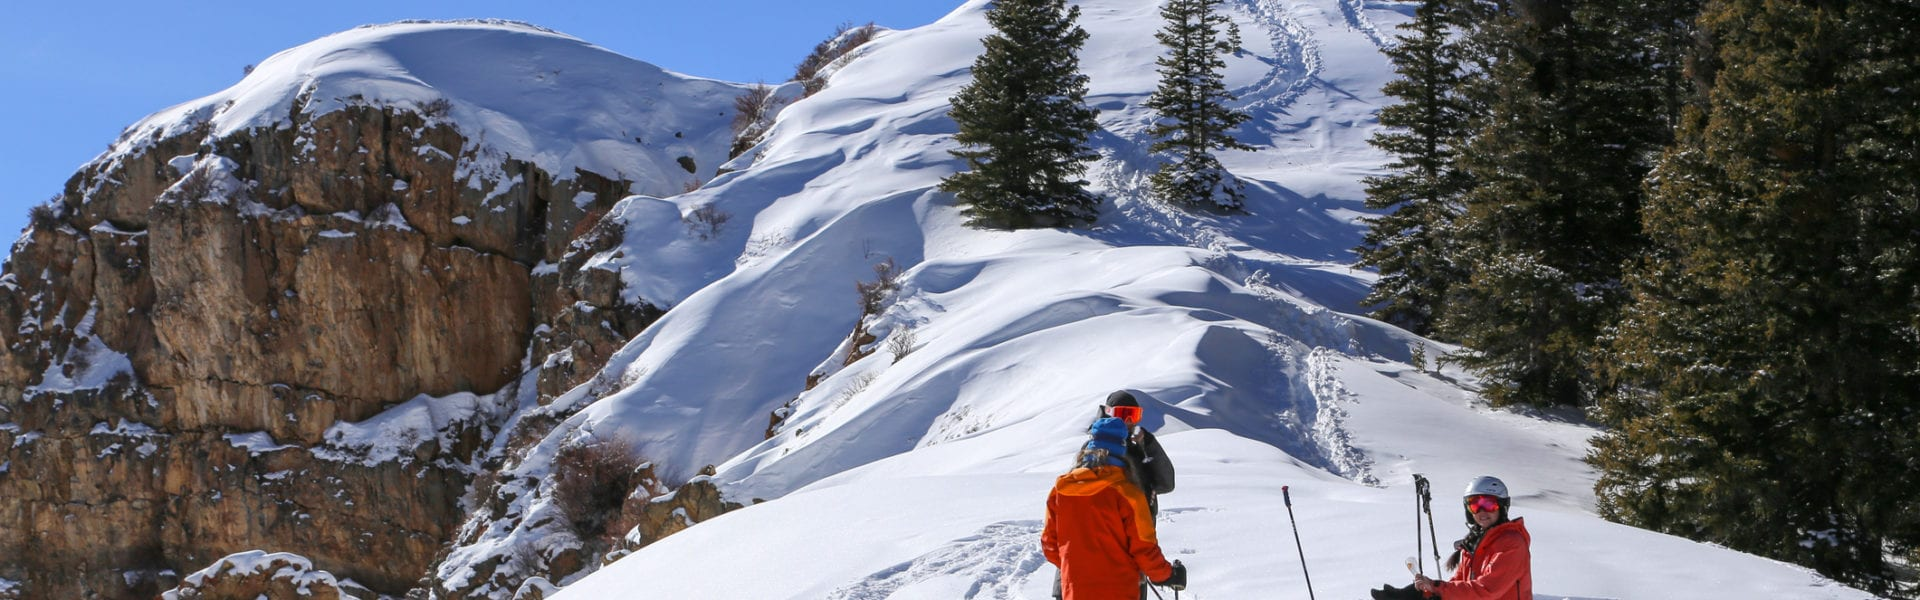 Aspen backcountry skiing